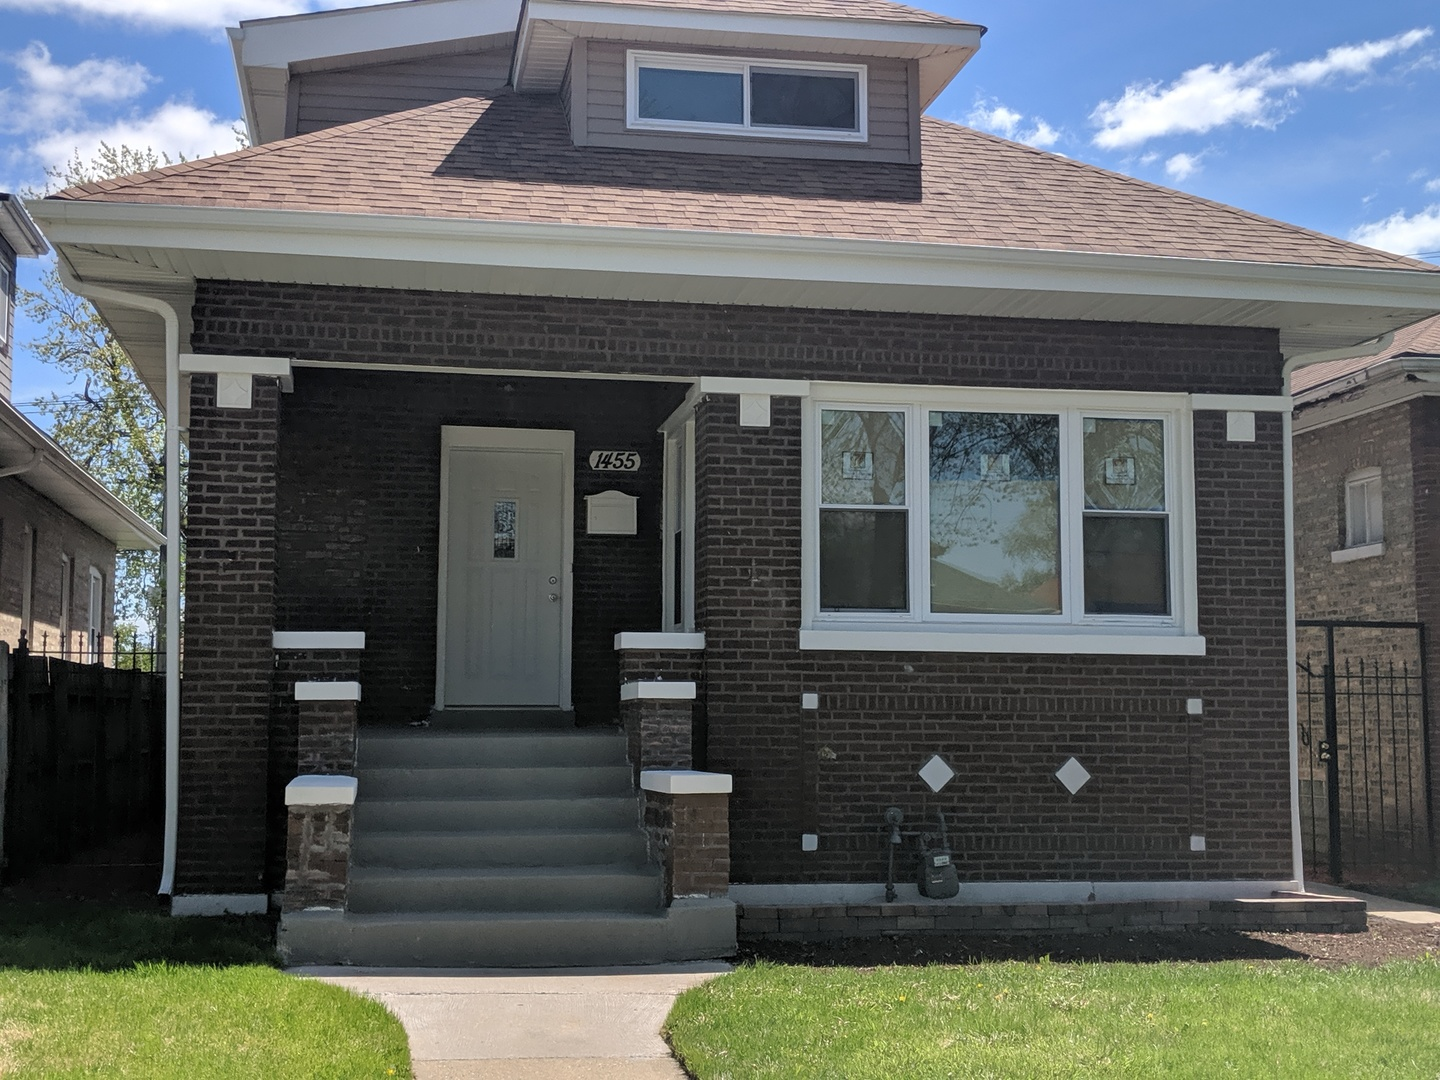 1455 NORTH MAYFIELD AVENUE, CHICAGO, IL 60651